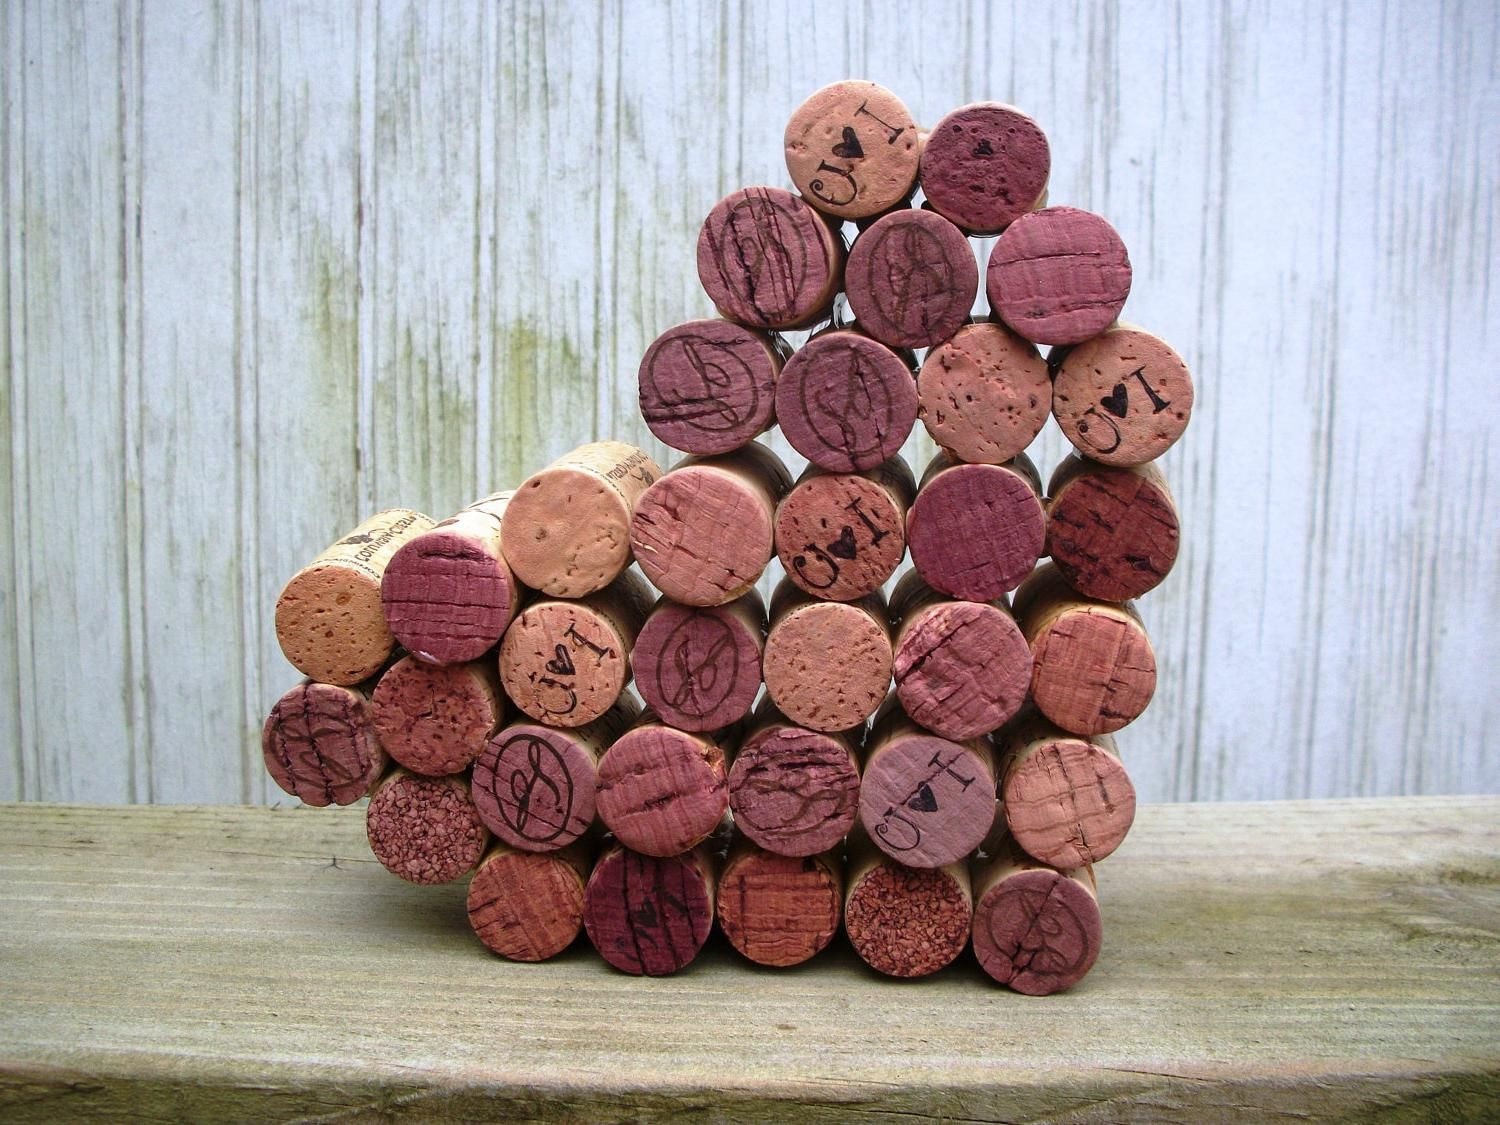 Ruselle S Blog Wedding Place Card Holders In Wine Cork Crafts Cork Crafts Wine Cork Art